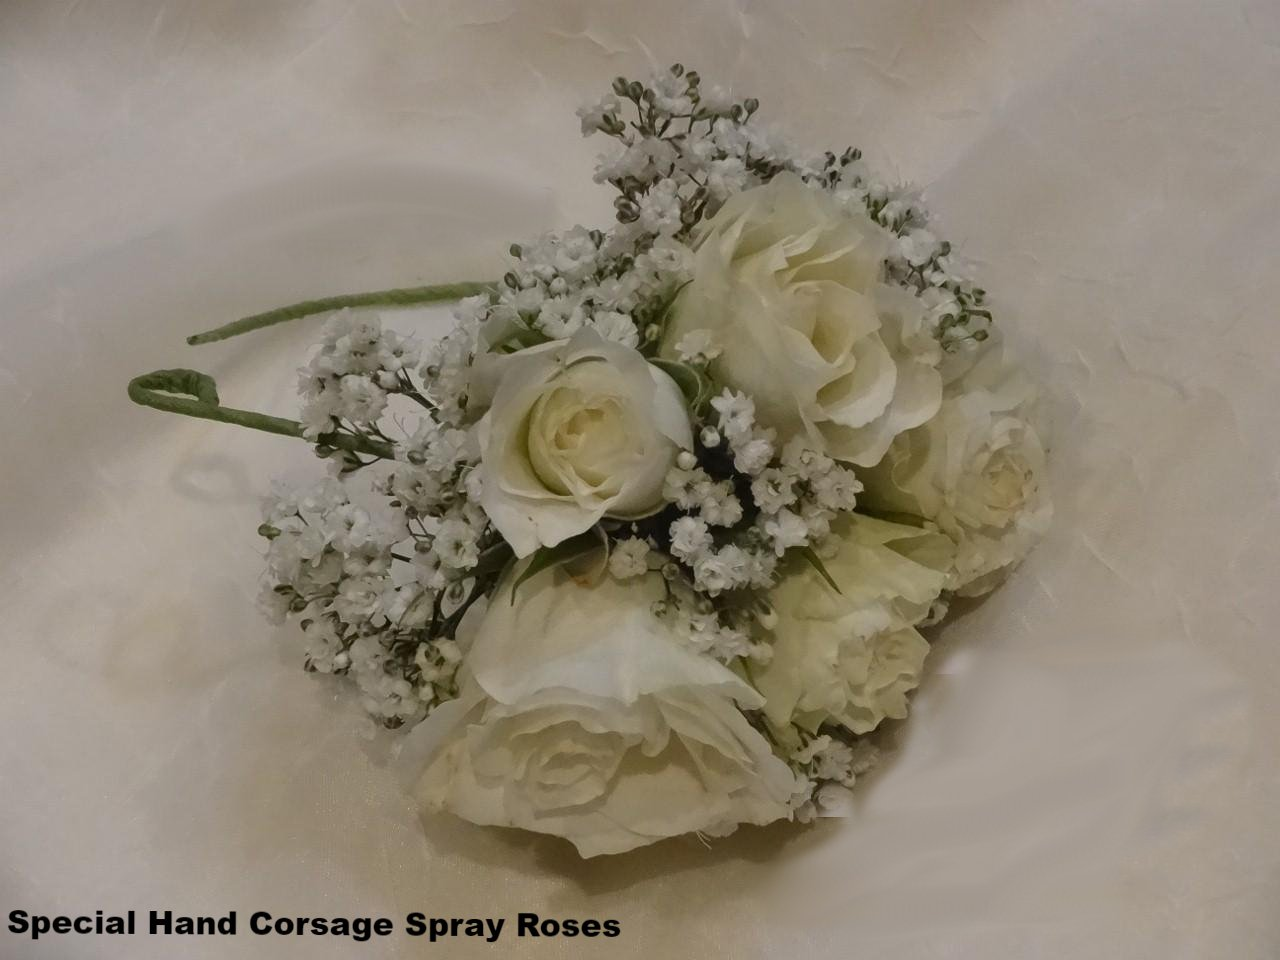 Hand Corsage Special with Spray Roses